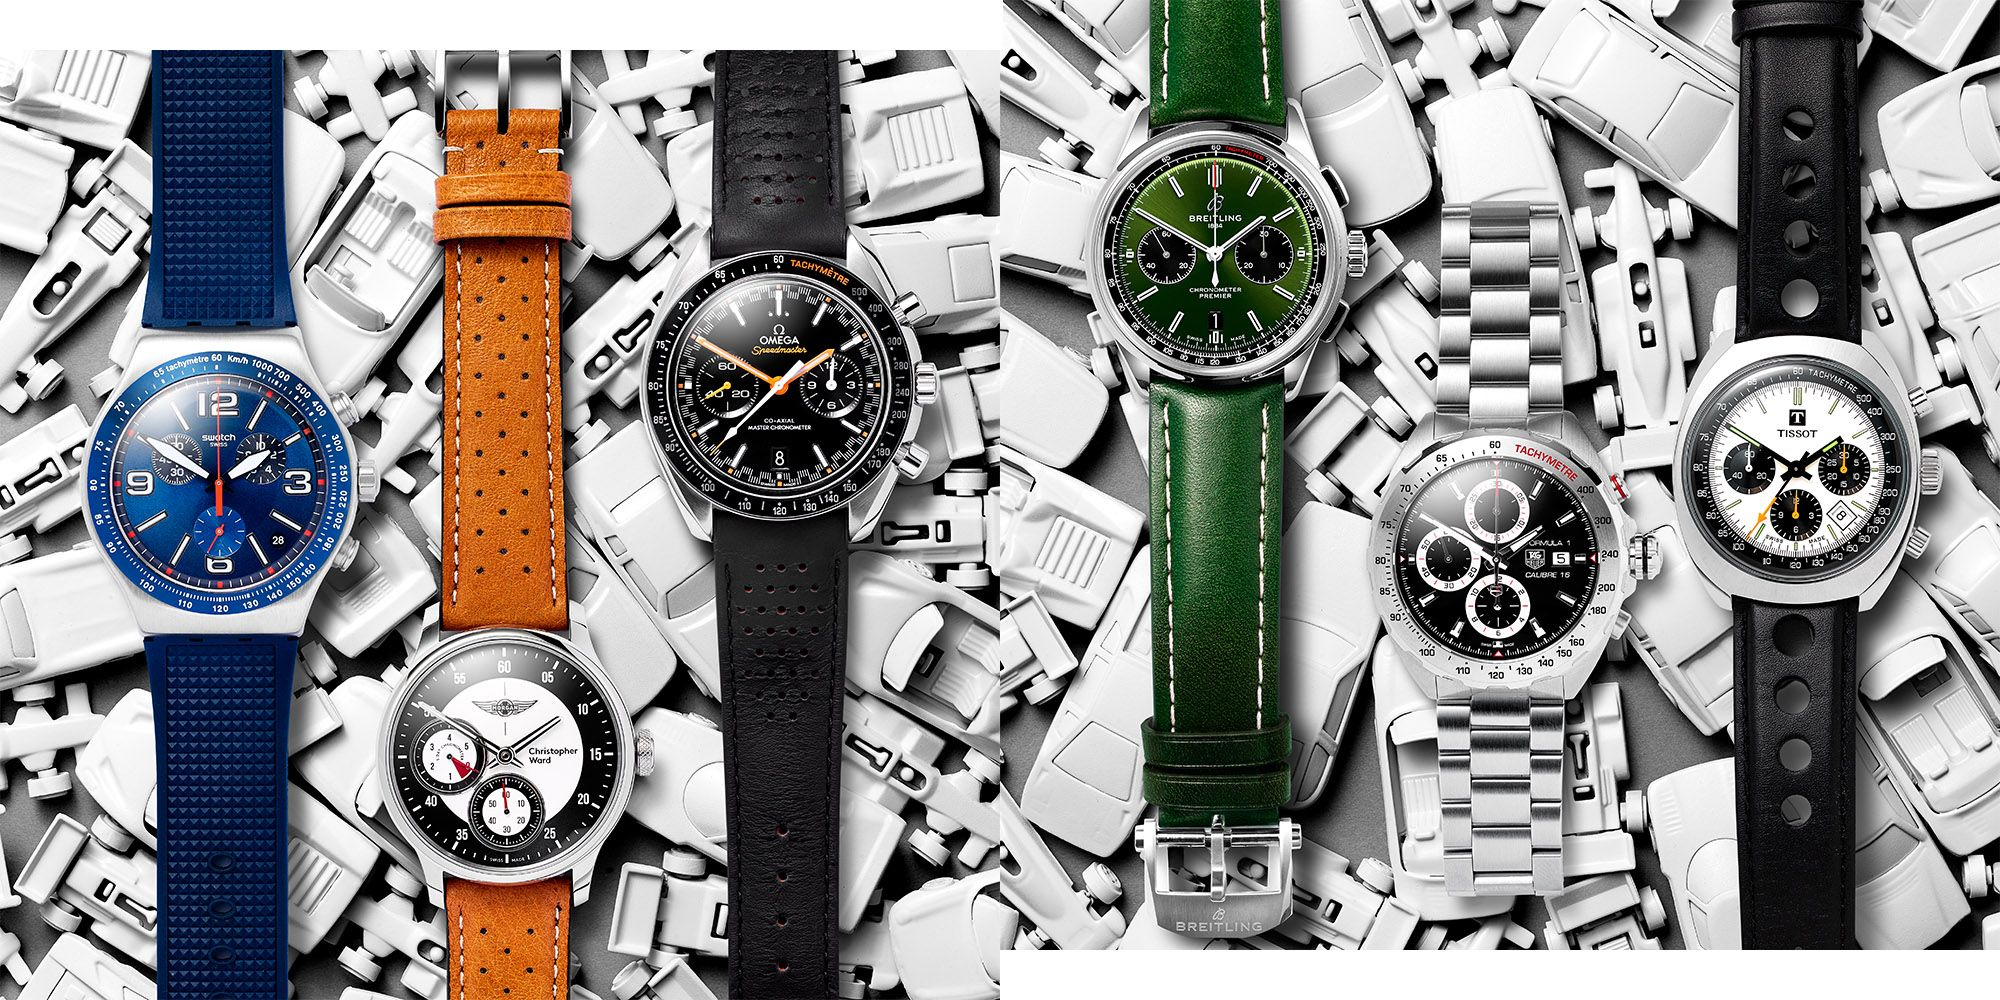 6 Racing-Inspired Watches To Rev-Up Your Summer Style